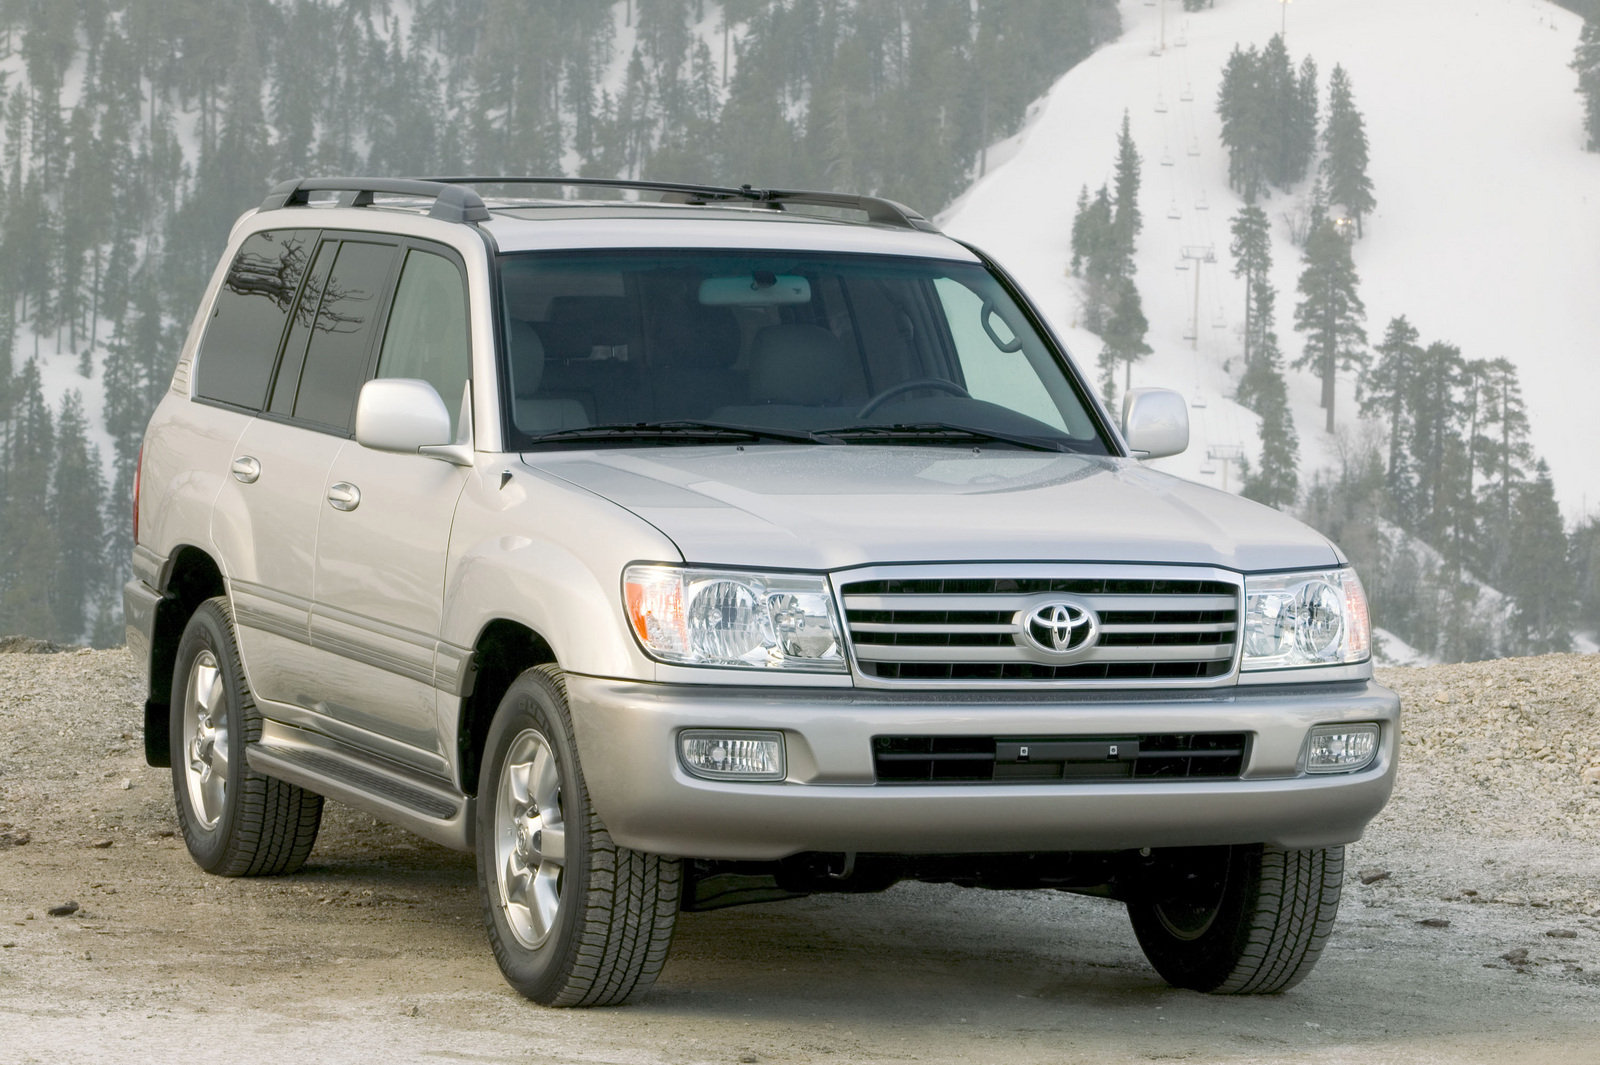 2006 toyota land cruiser picture 94384 car review